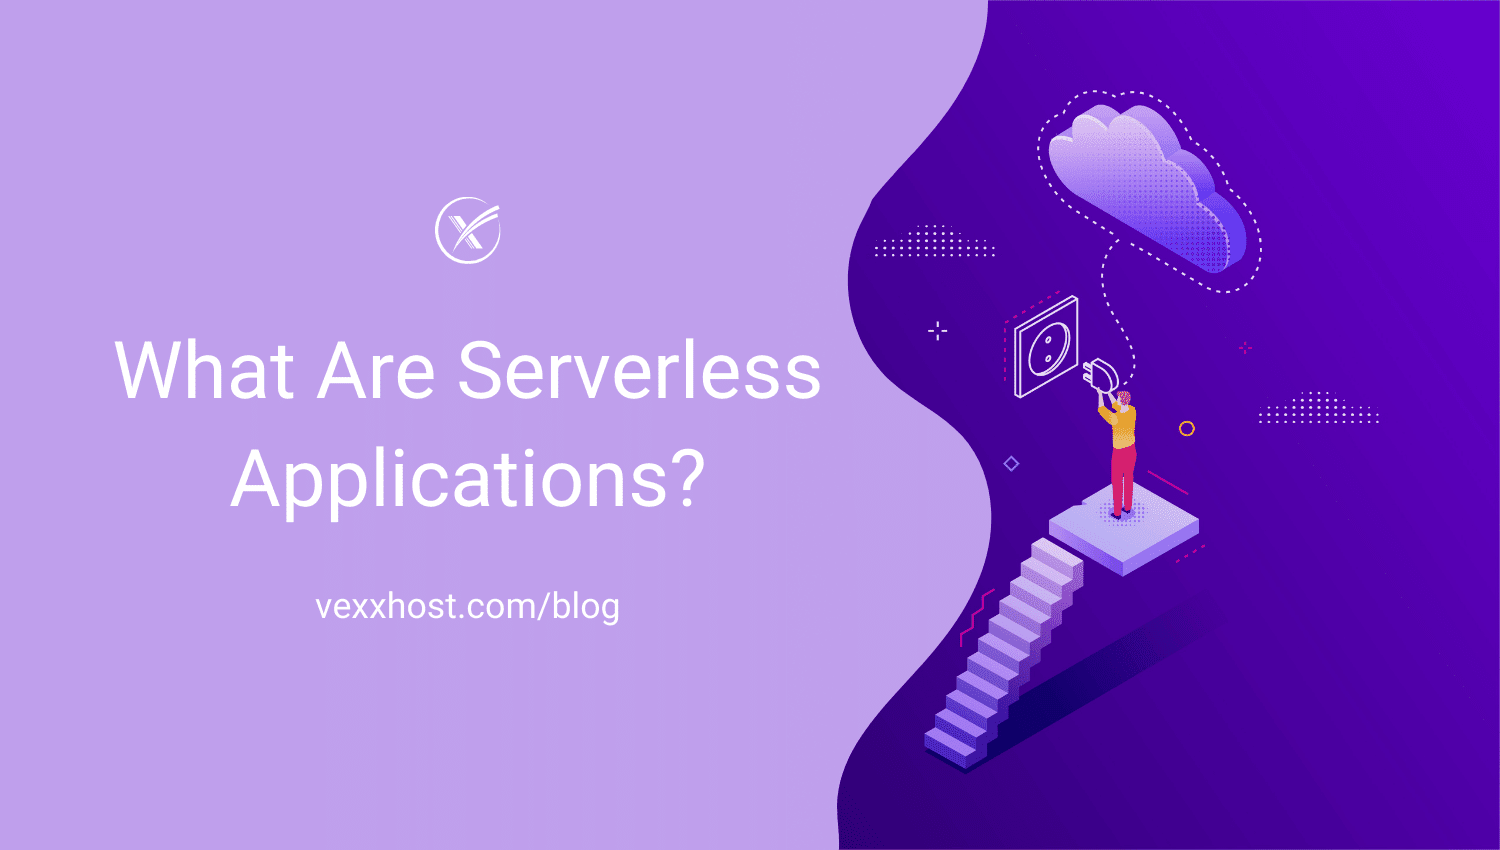 What Are Serverless Applications?